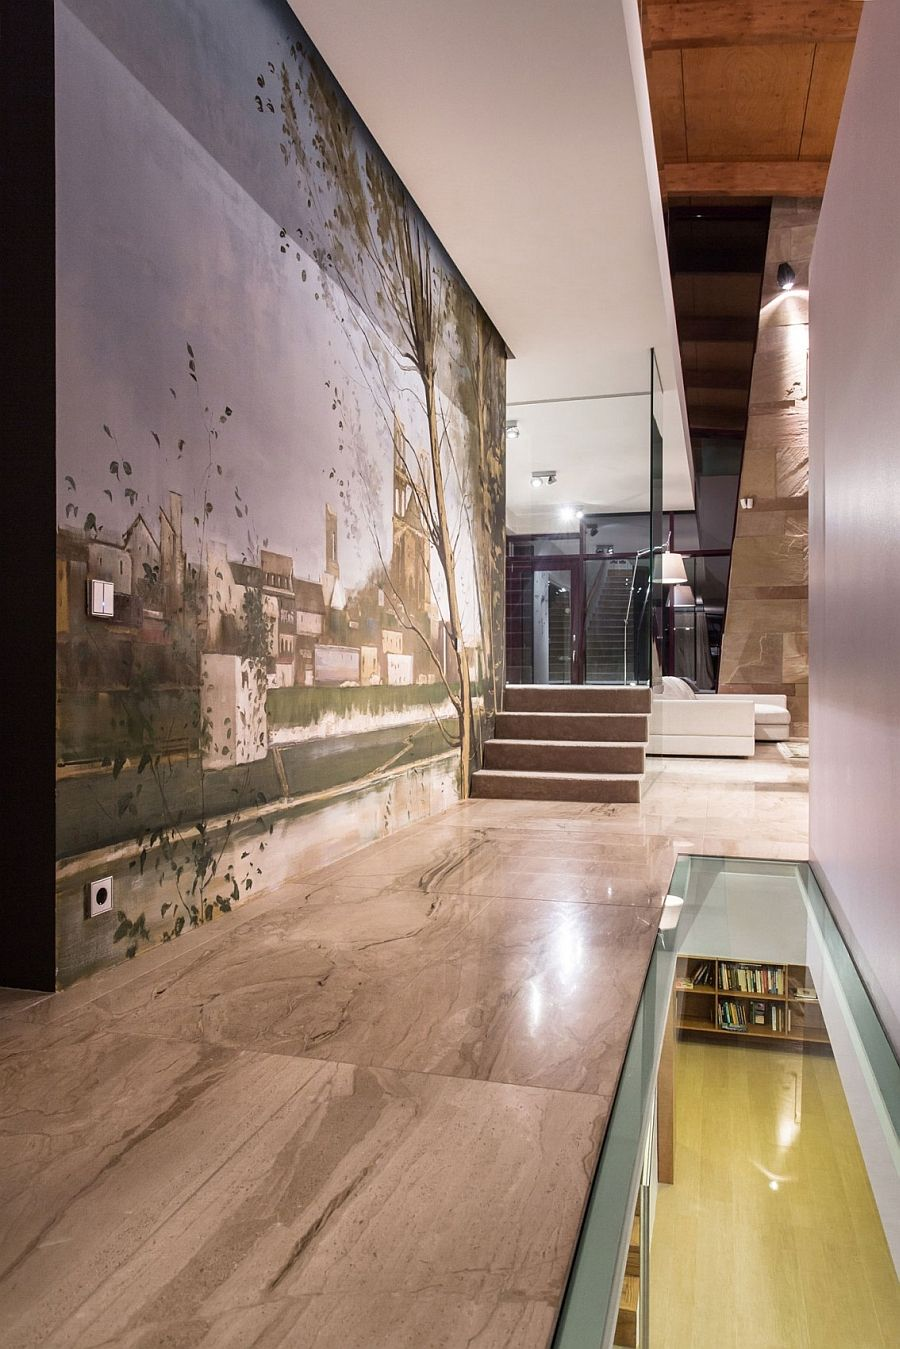 Gorgeous wall mural adds elegance and class to the modern home